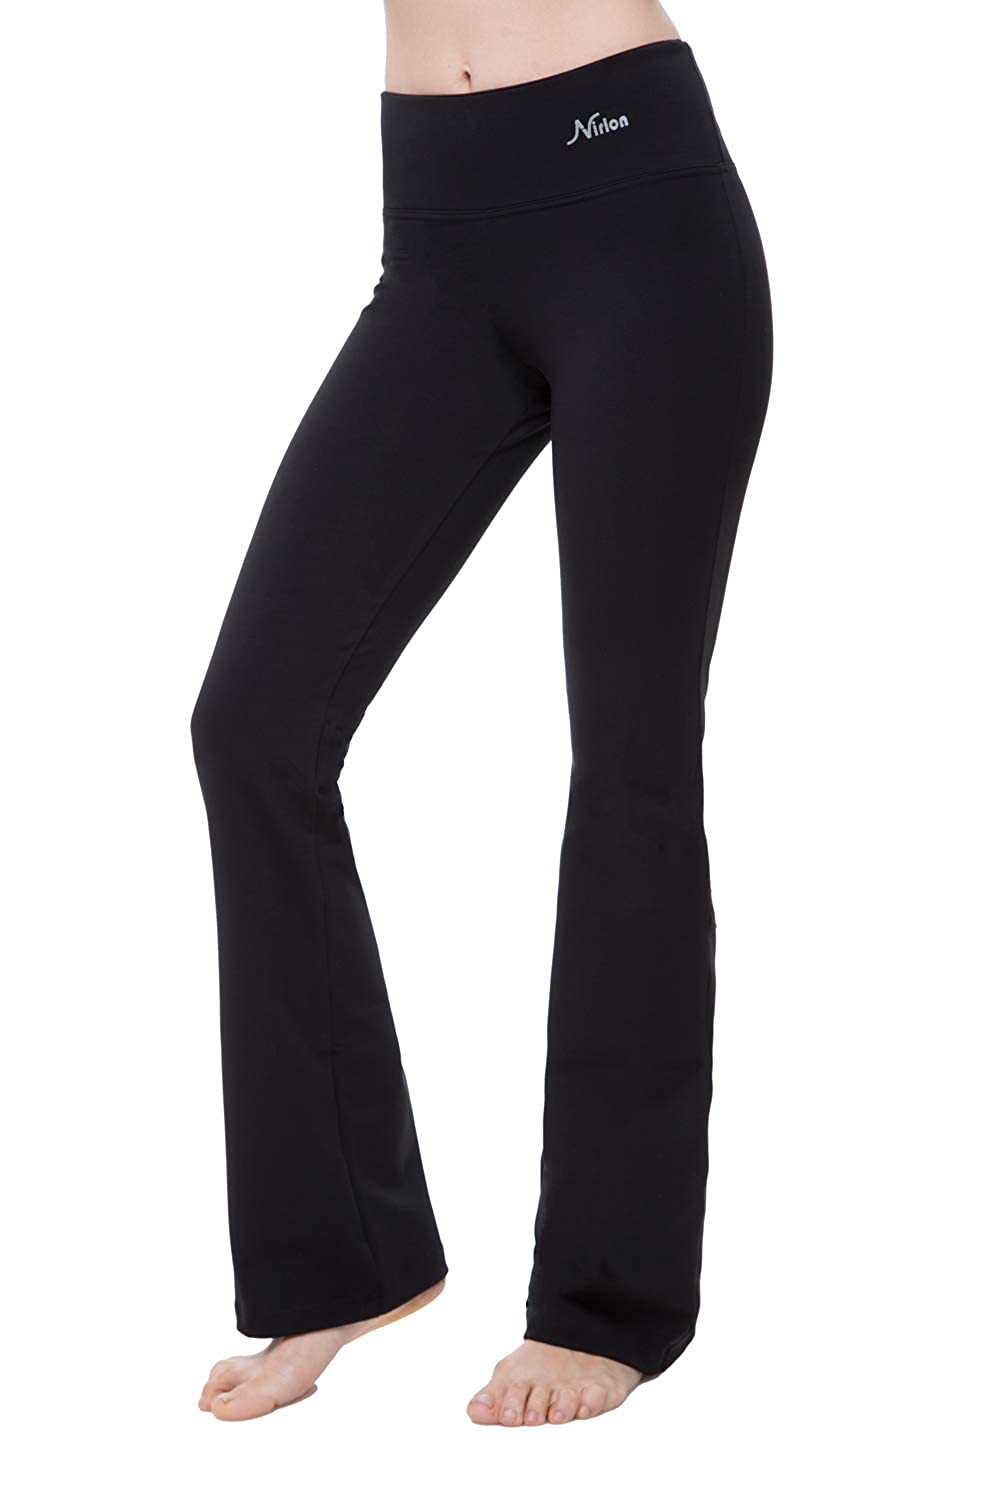 d63dd940f25628 Amazon.com: NIRLON Bootcut Yoga Pants High Waist Black Workout Leggings for Women  Plus Size: Clothing